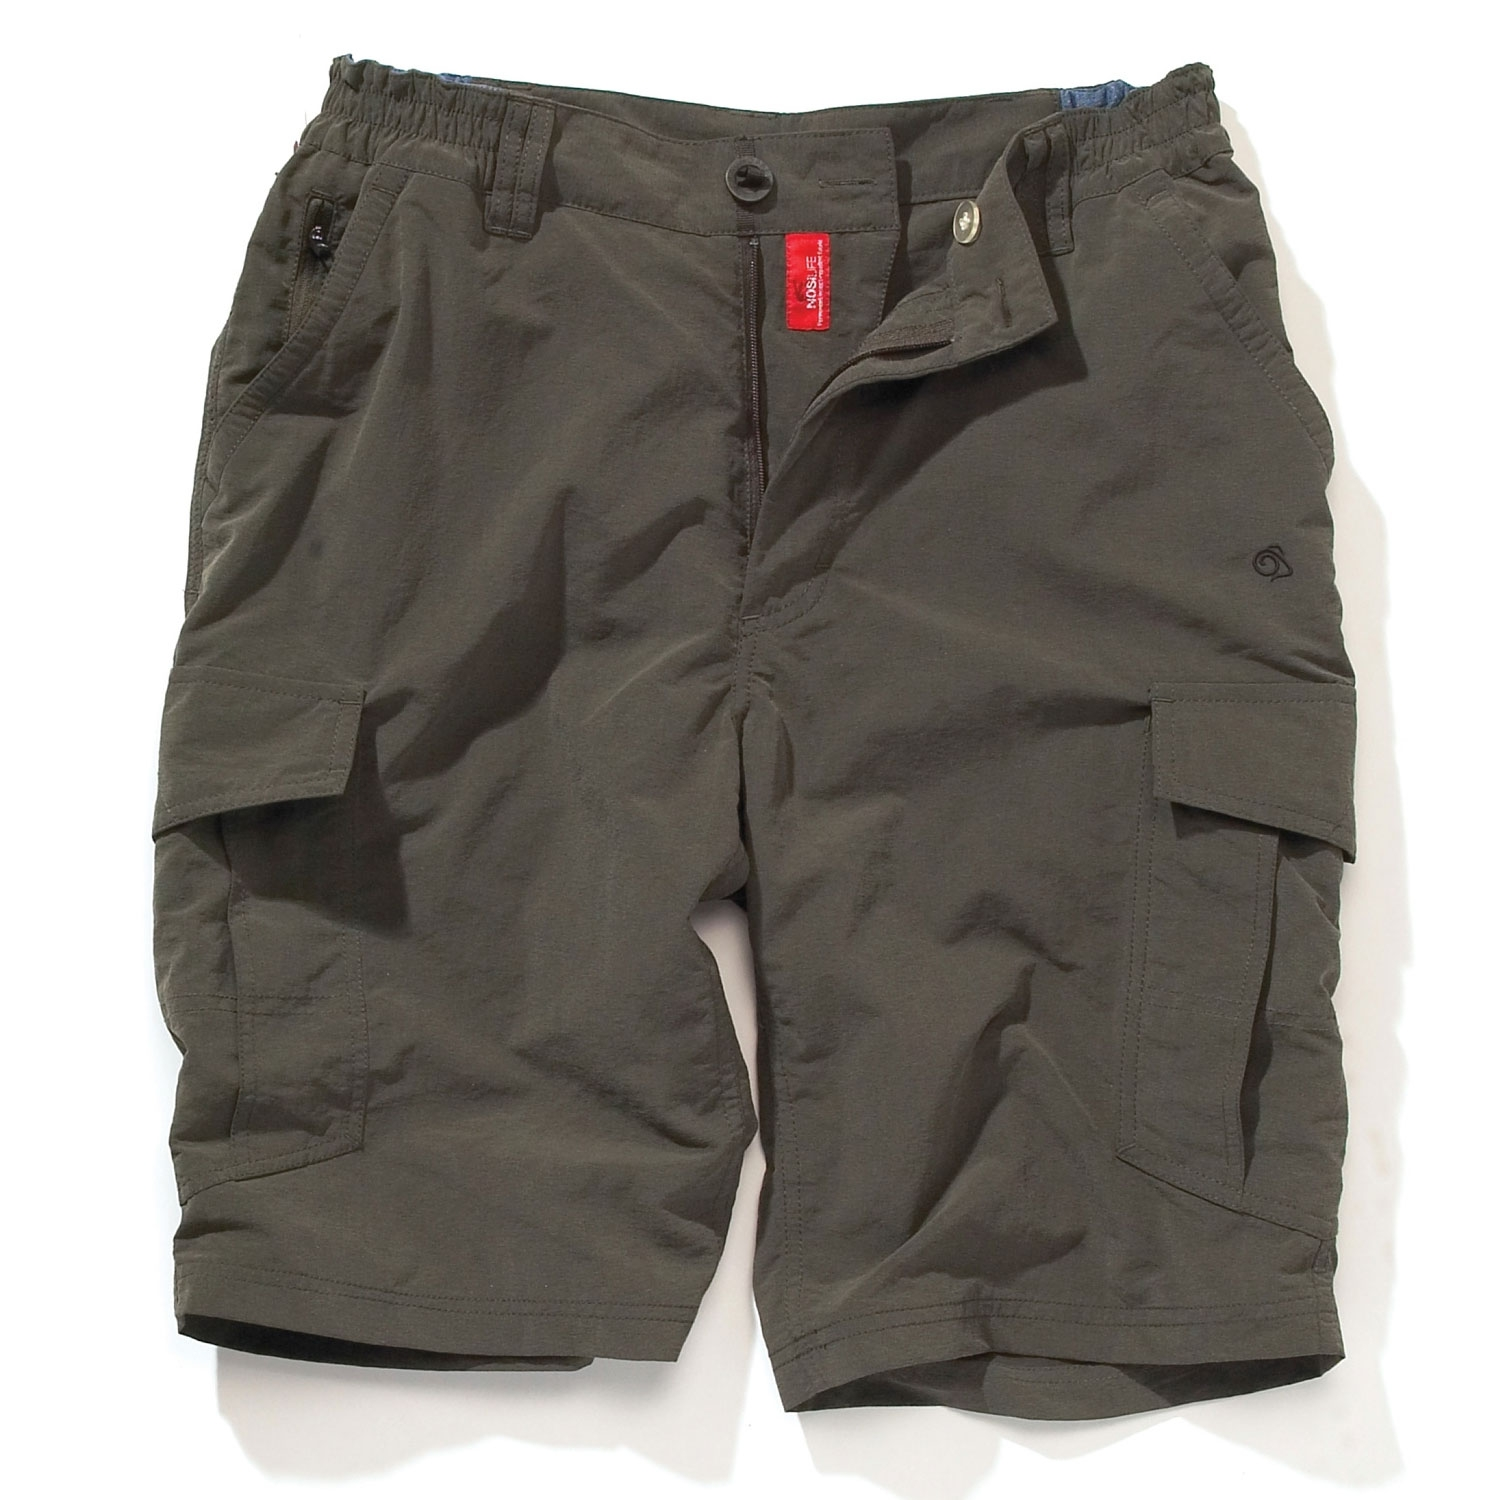 dark khaki cargo shorts hardon clothes